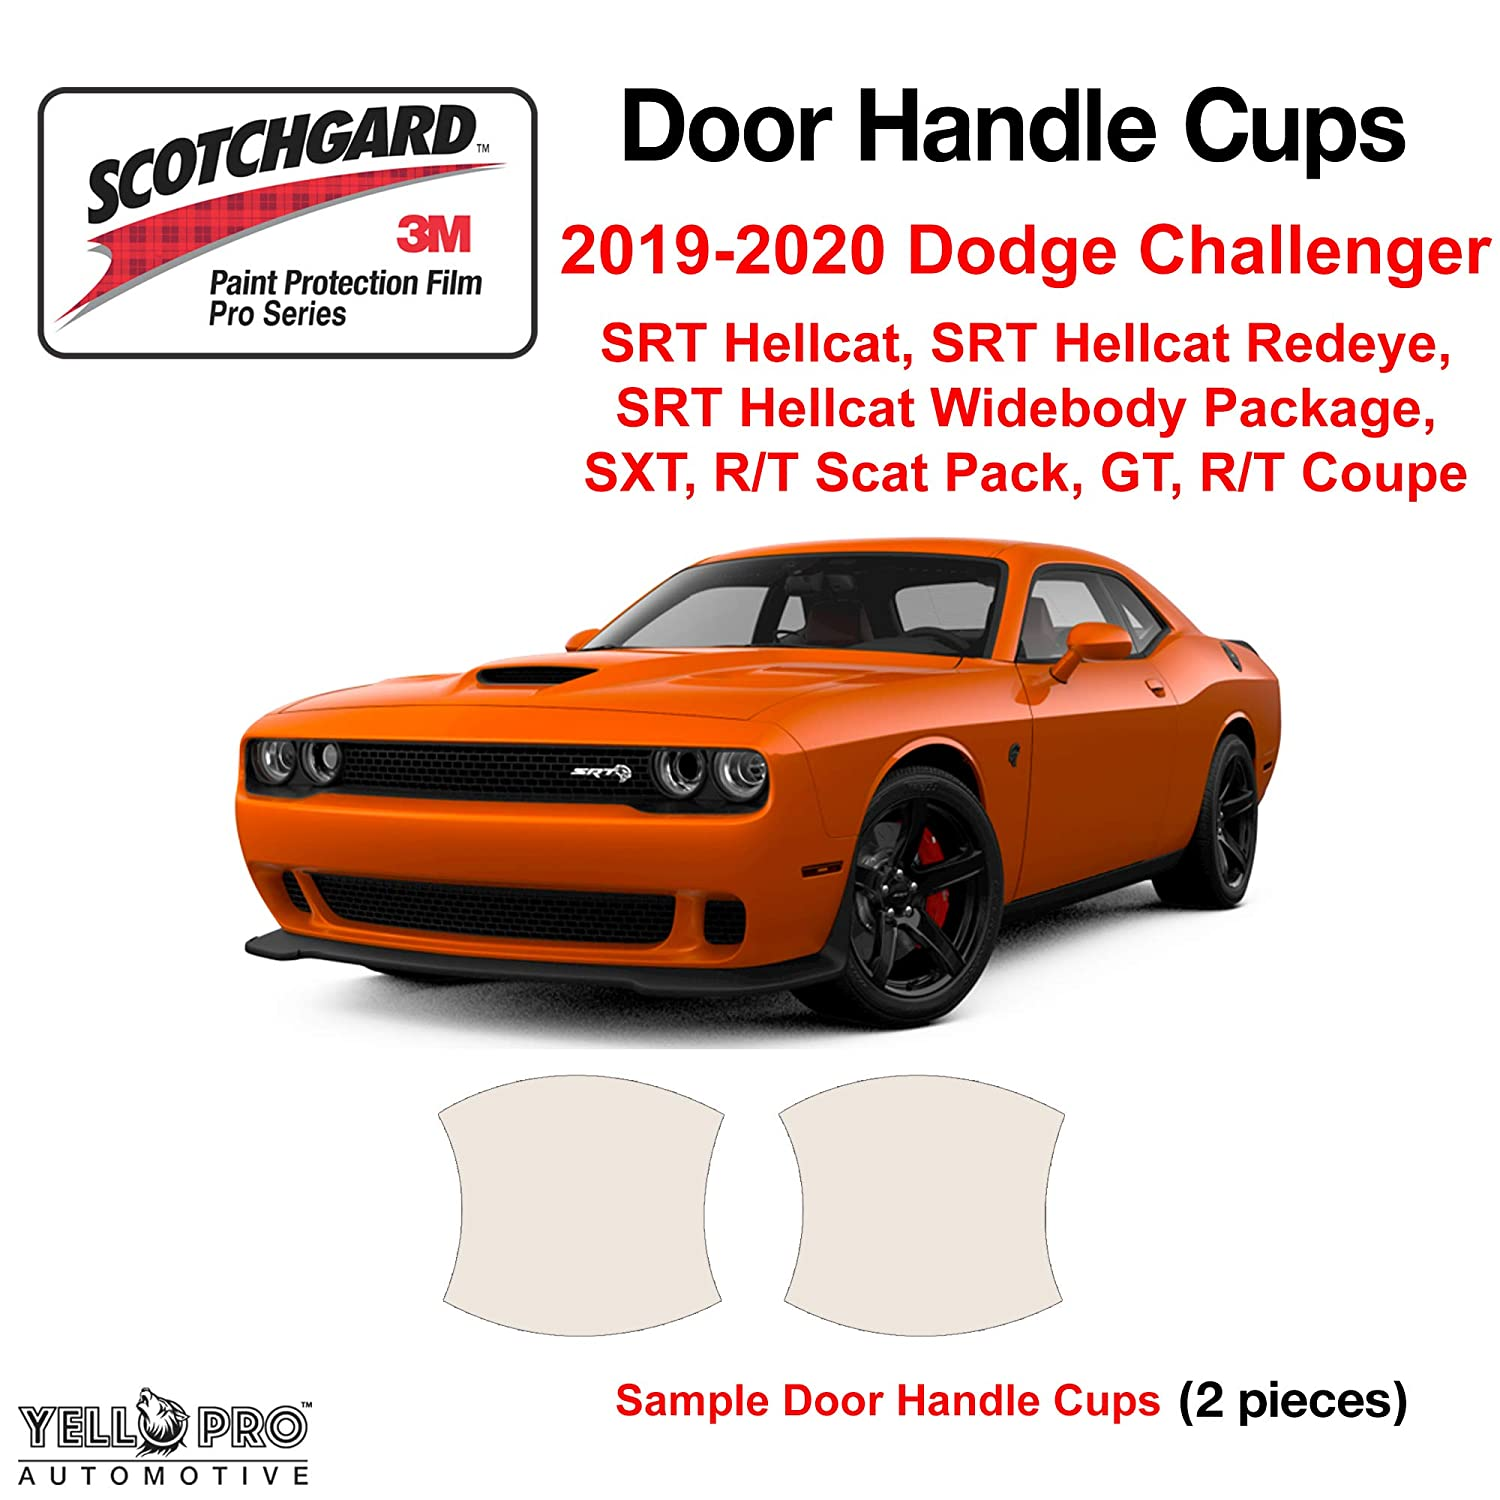 YelloPro Custom Fit Door Handle Cup 3M Anti Scratch Clear Bra Paint Protector Film Cover Self Healing PPF Guard For 2019 2020 Dodge Challenger SRT Hellcat,Redeye,Widebody SXT,RT Scat Pack,GT,RT Coupe